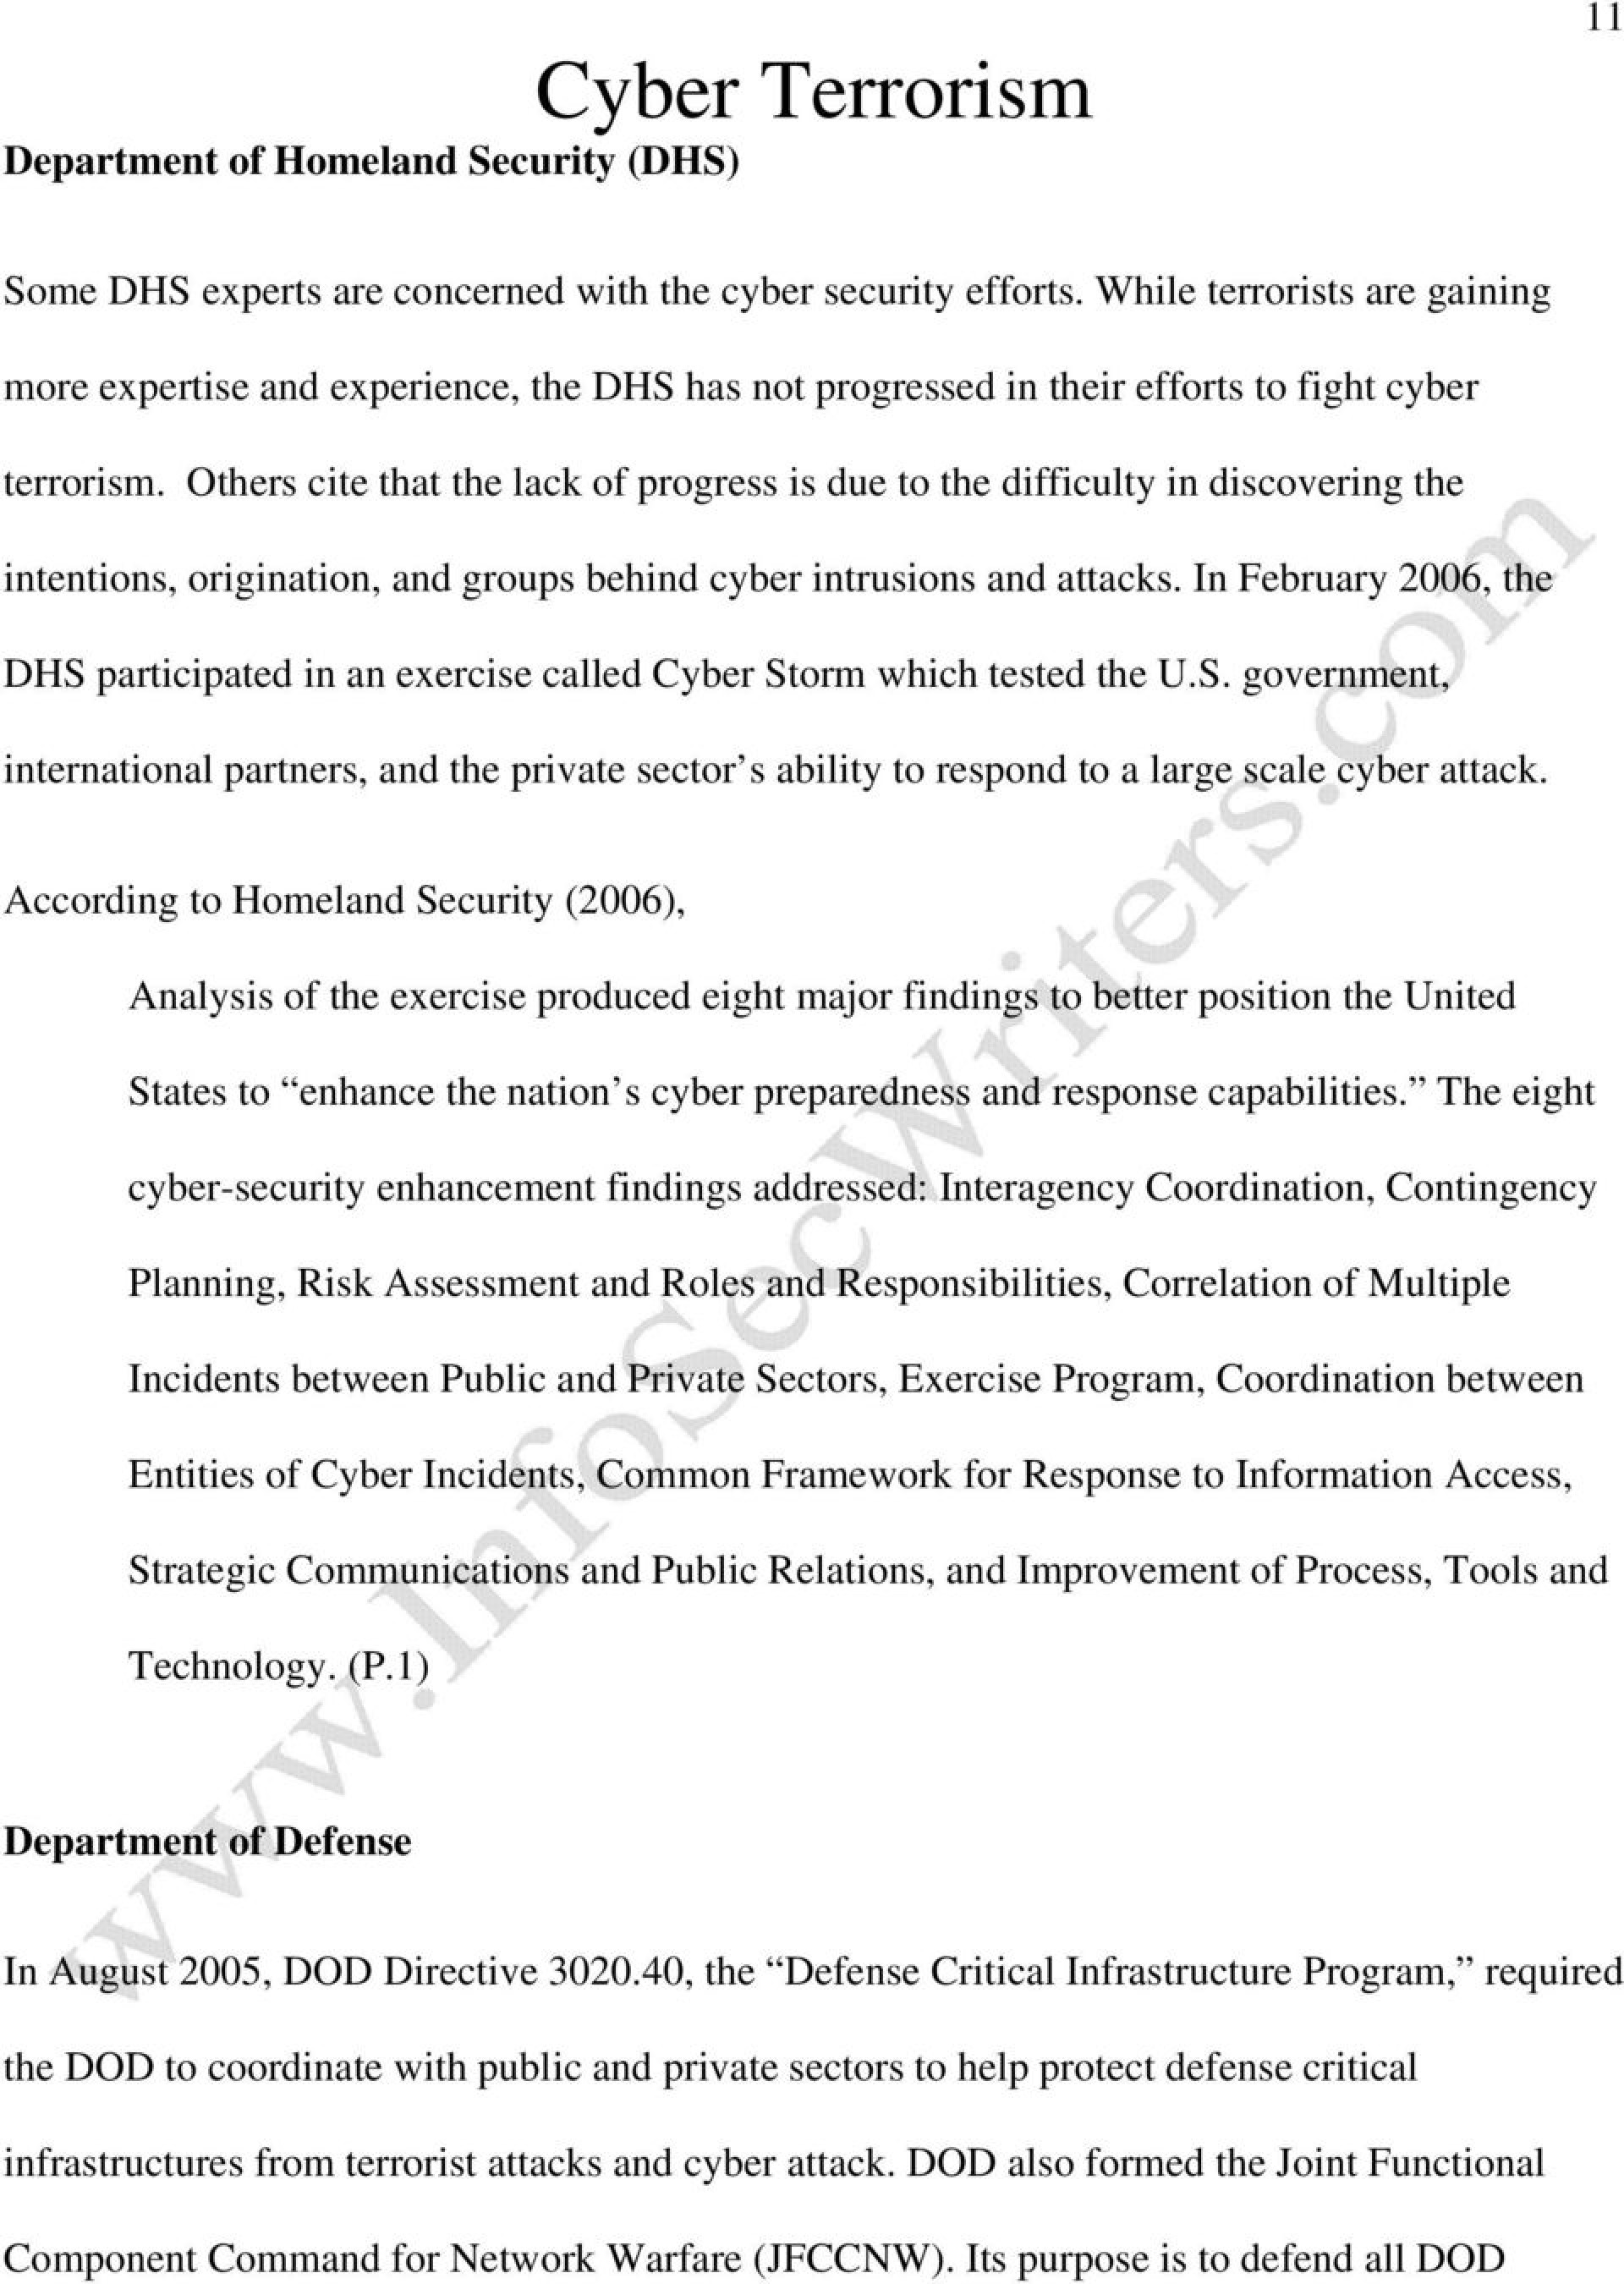 017 Cyber Terrorism Essay Research Paper Page 11 Imposing 1920